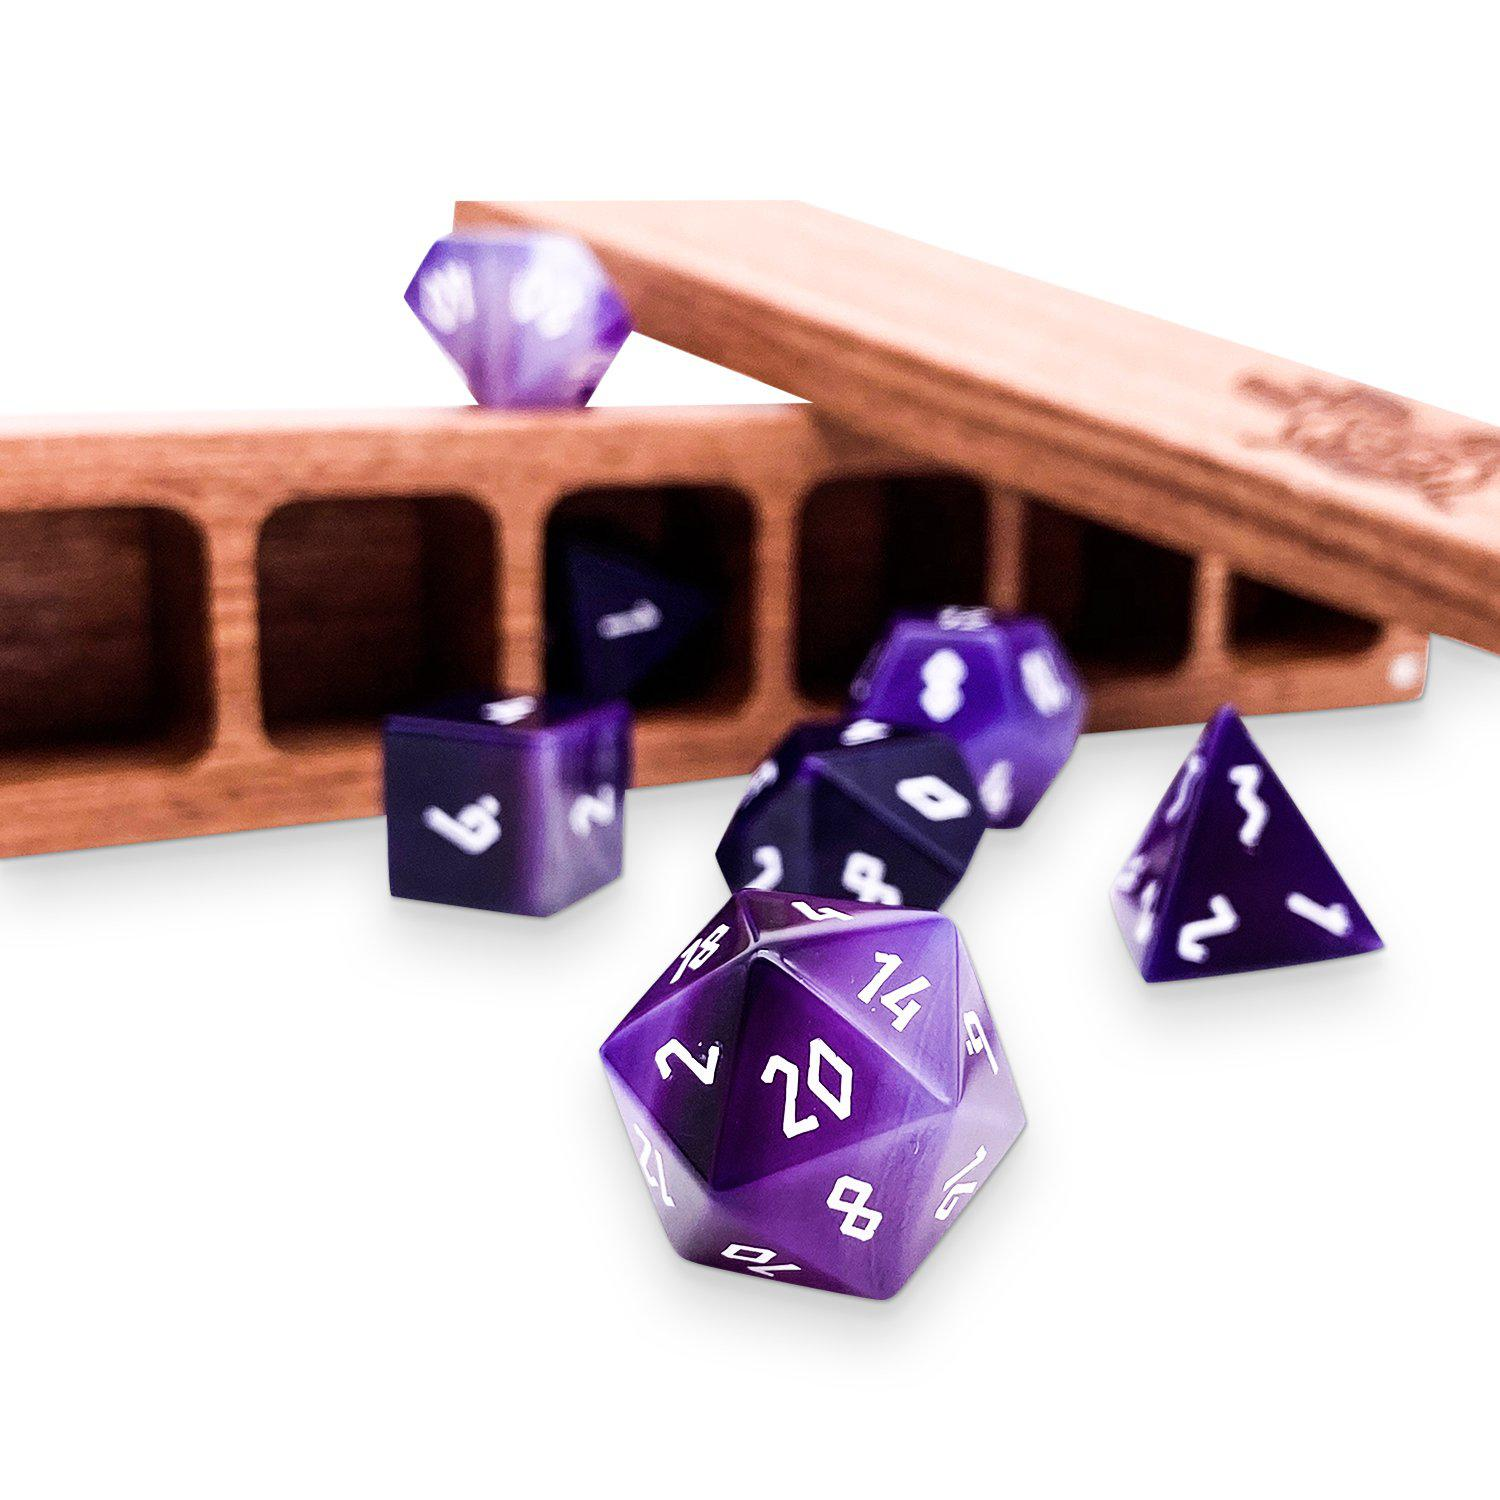 Norse Foundry Rpg Metal Gemstone Precision Dice Coins Accessories Diceenvy, norse foundry , and dieharddice. norse foundry rpg metal gemstone